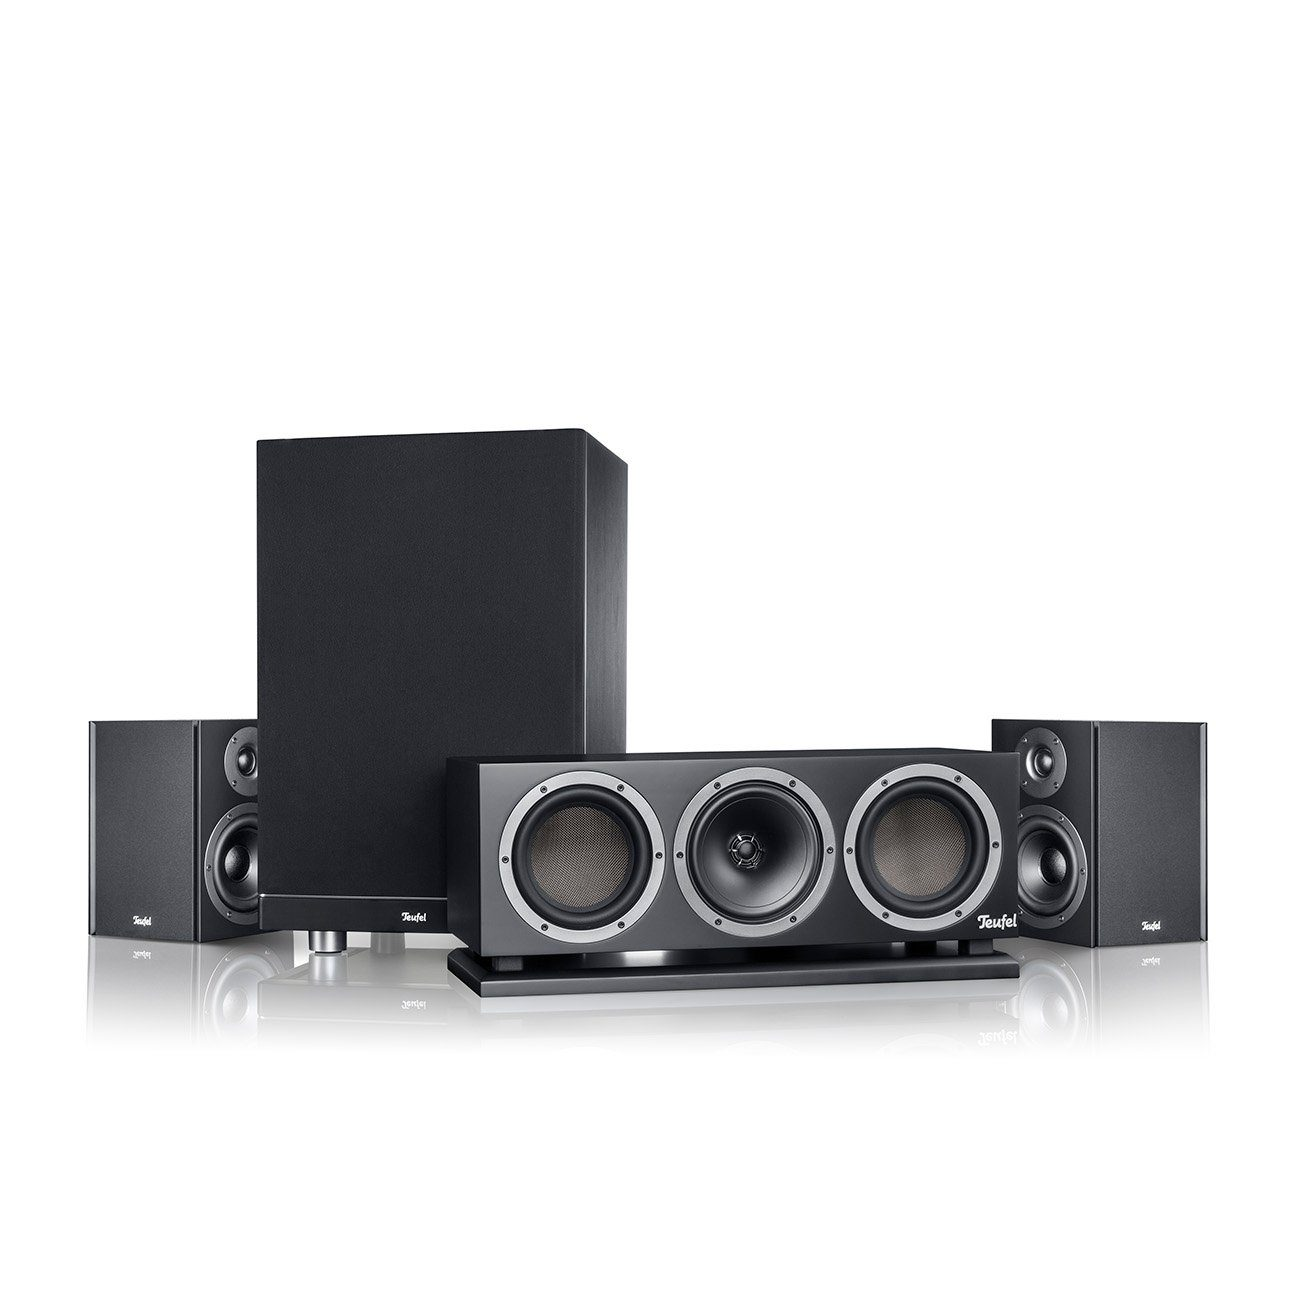 Teufel Lautsprecher Ausbau-Set Surround »Theater 500 2.0>5.1 Ausbau-Set Surround«